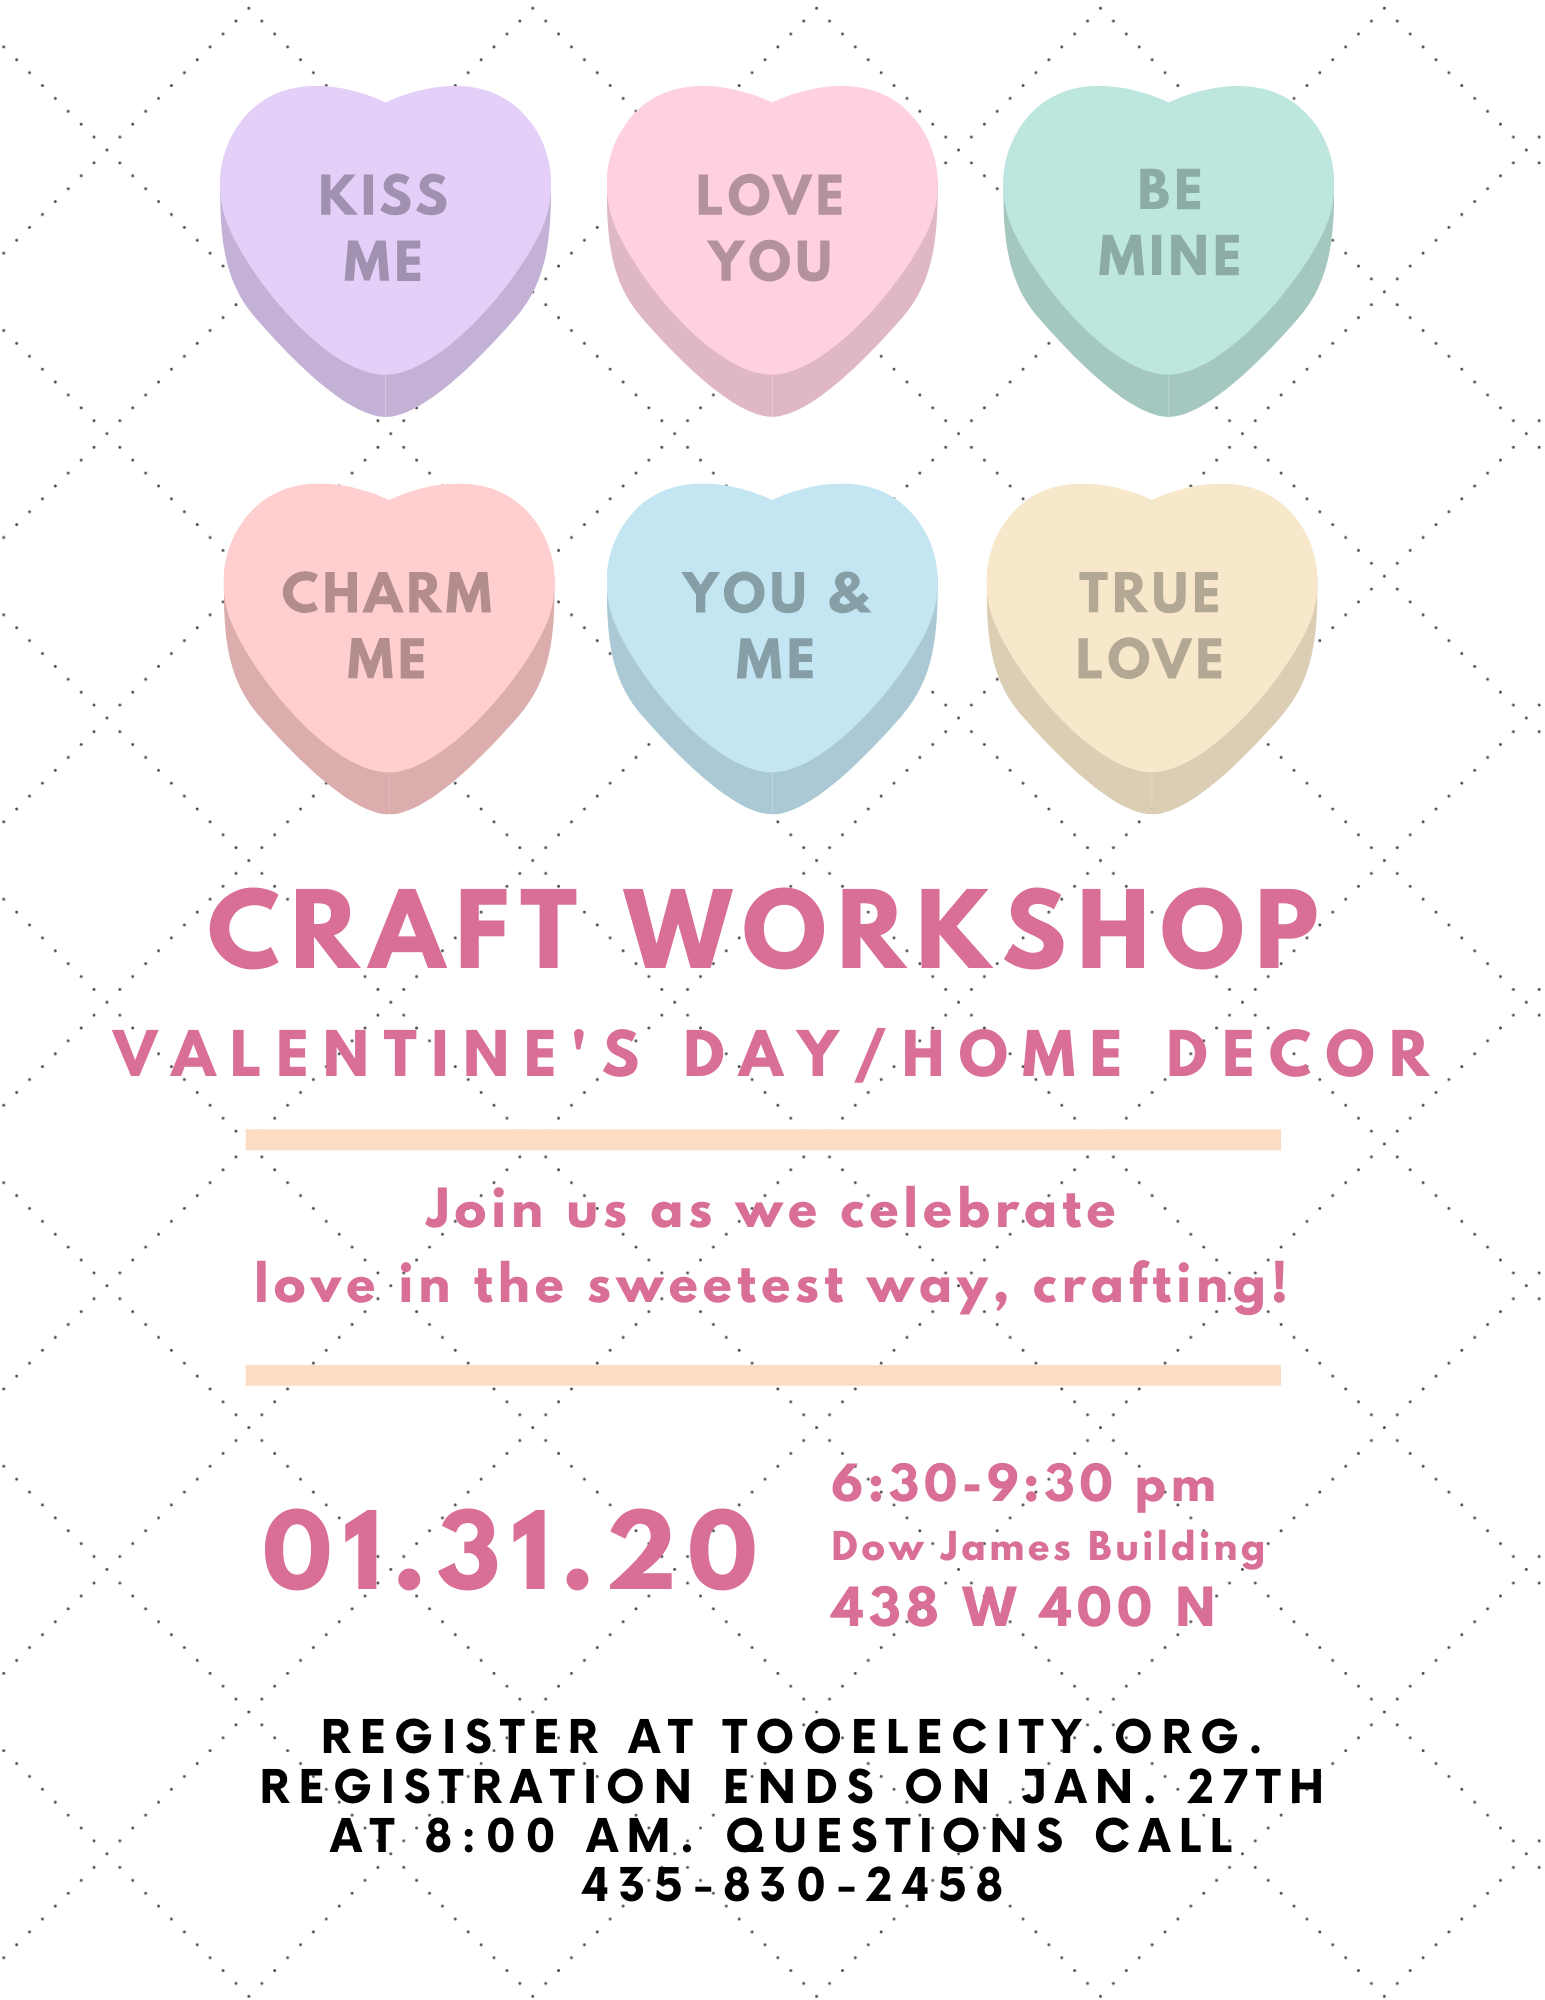 Valentine's Day/Home Decor Craft Workshop @ Dow James Building | Tooele | Utah | United States